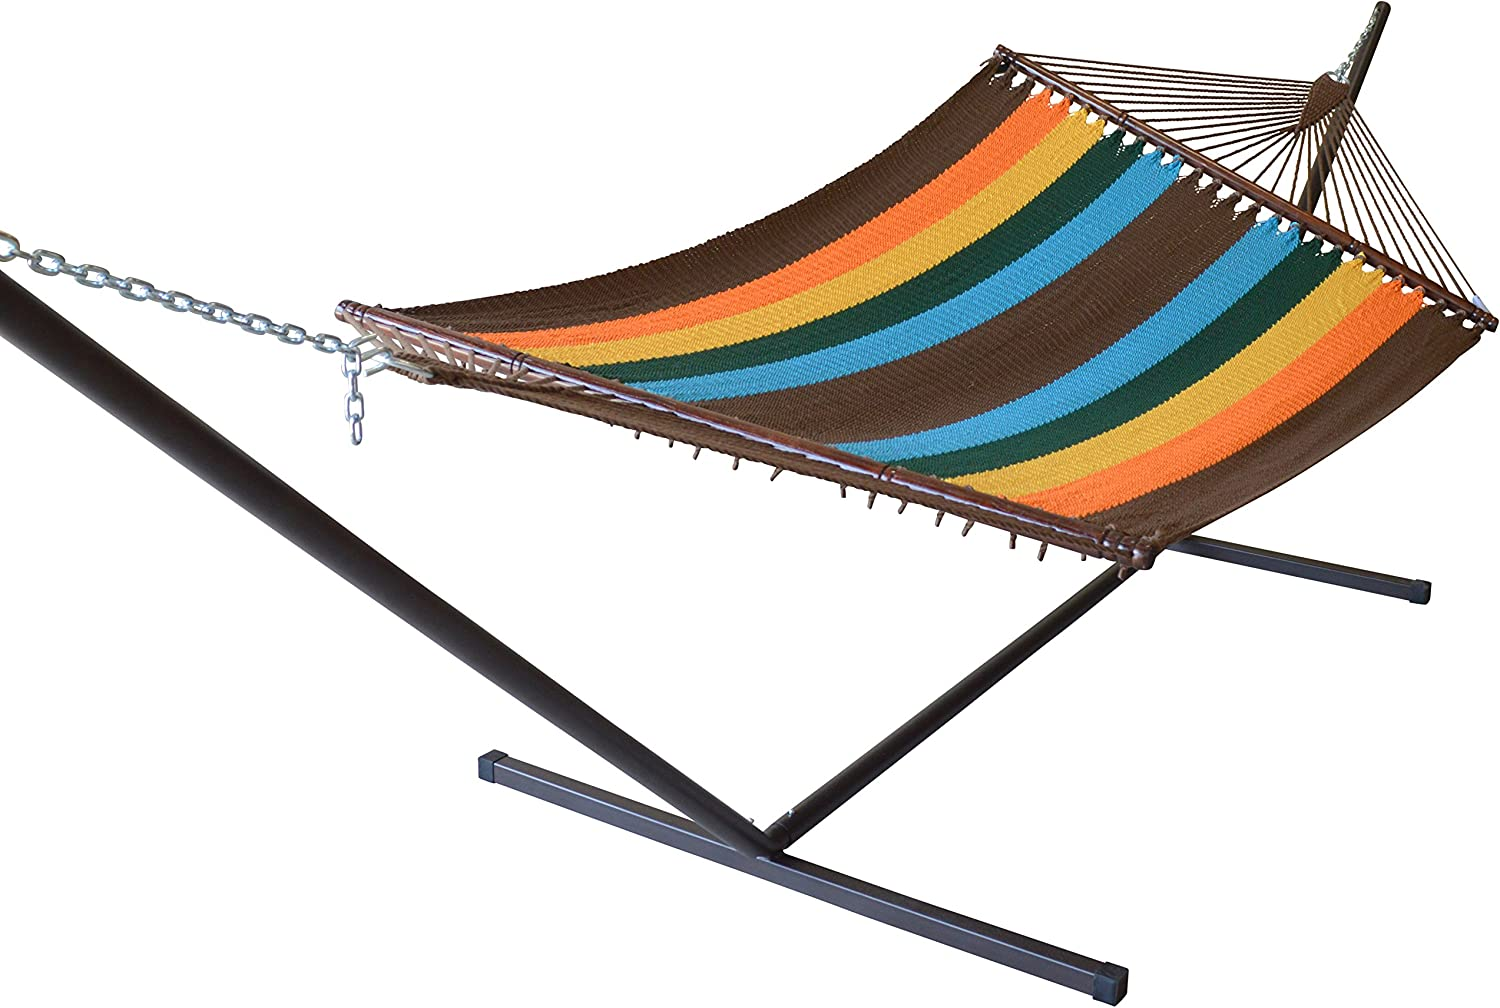 Caribbean Hammocks Jumbo Hammock and 15 ft Tribeam Stand - Multi Color Orange